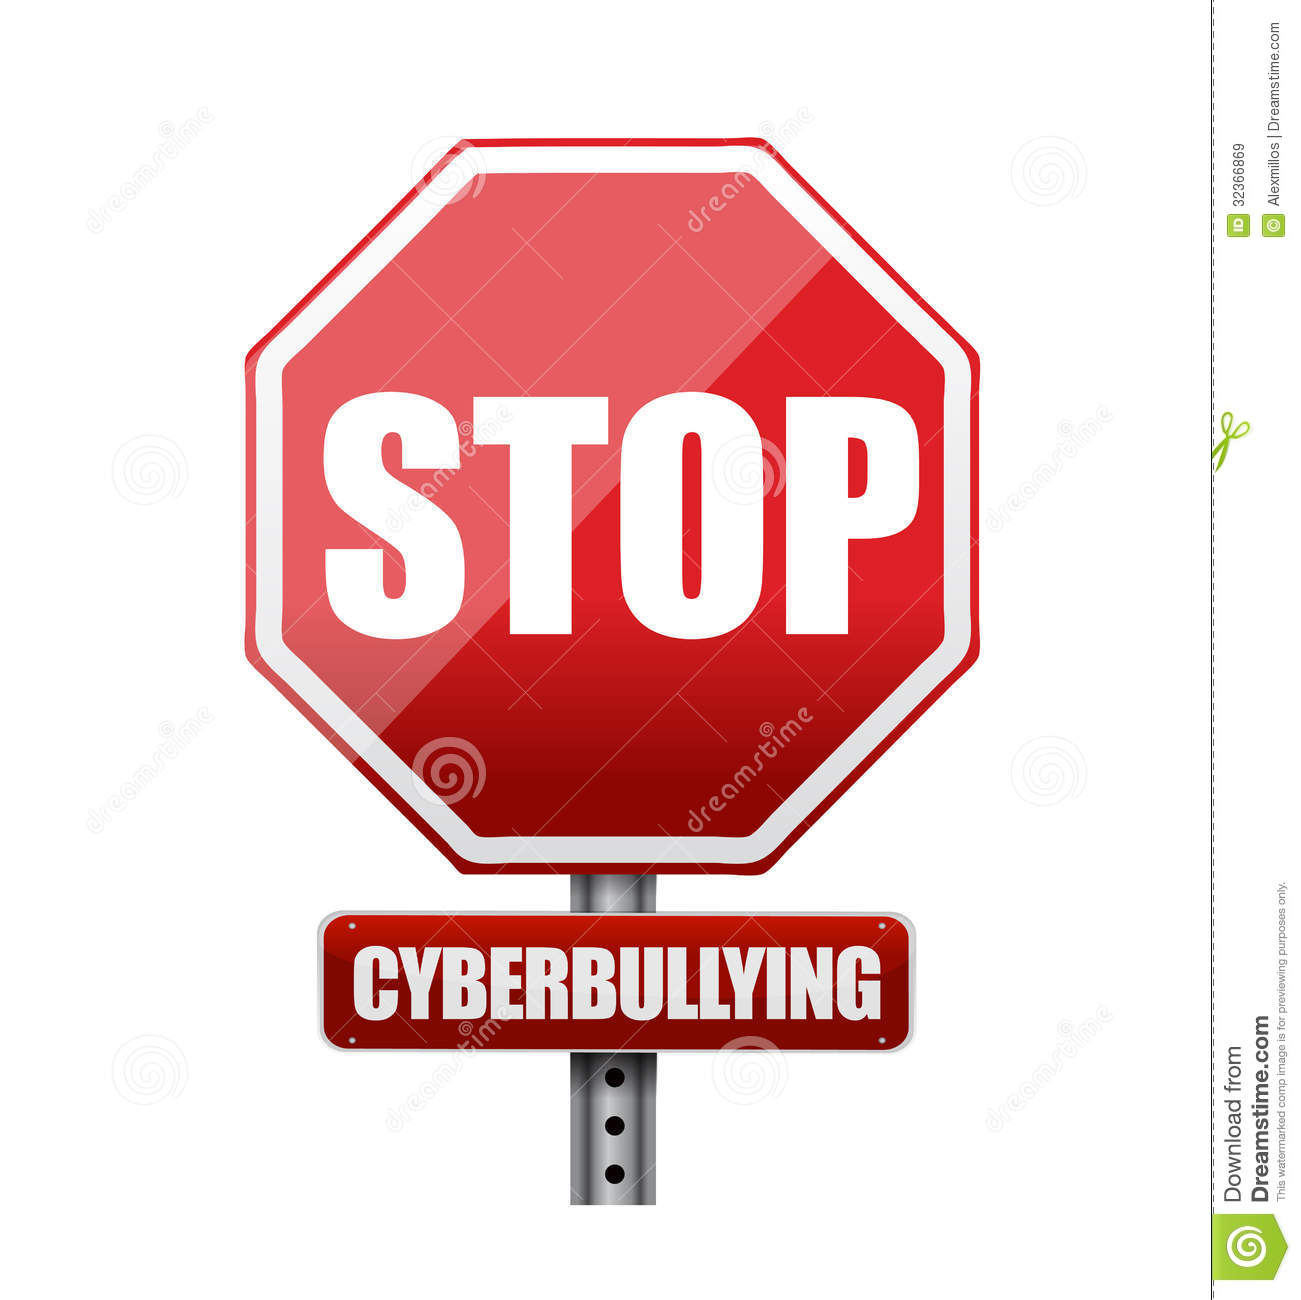 Triangle Road Signs >> Stop Cyberbullying Sign Illustration Design Stock ...